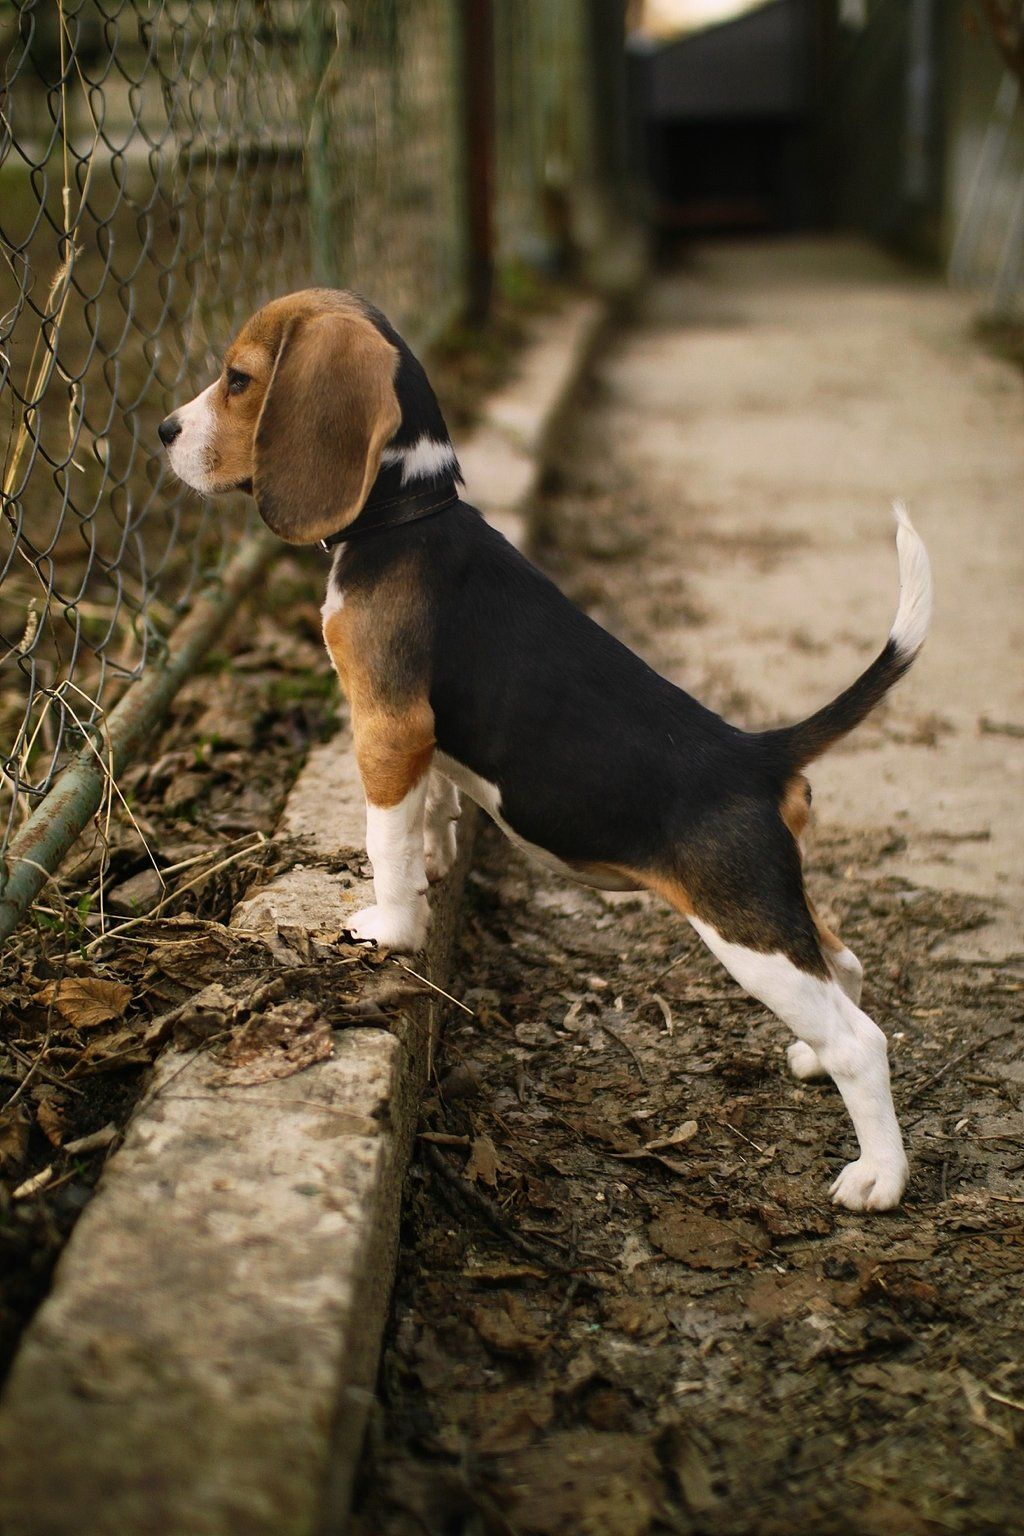 This Beagle Looks Like My 12 Year Old Baby Boy Who Passed Away